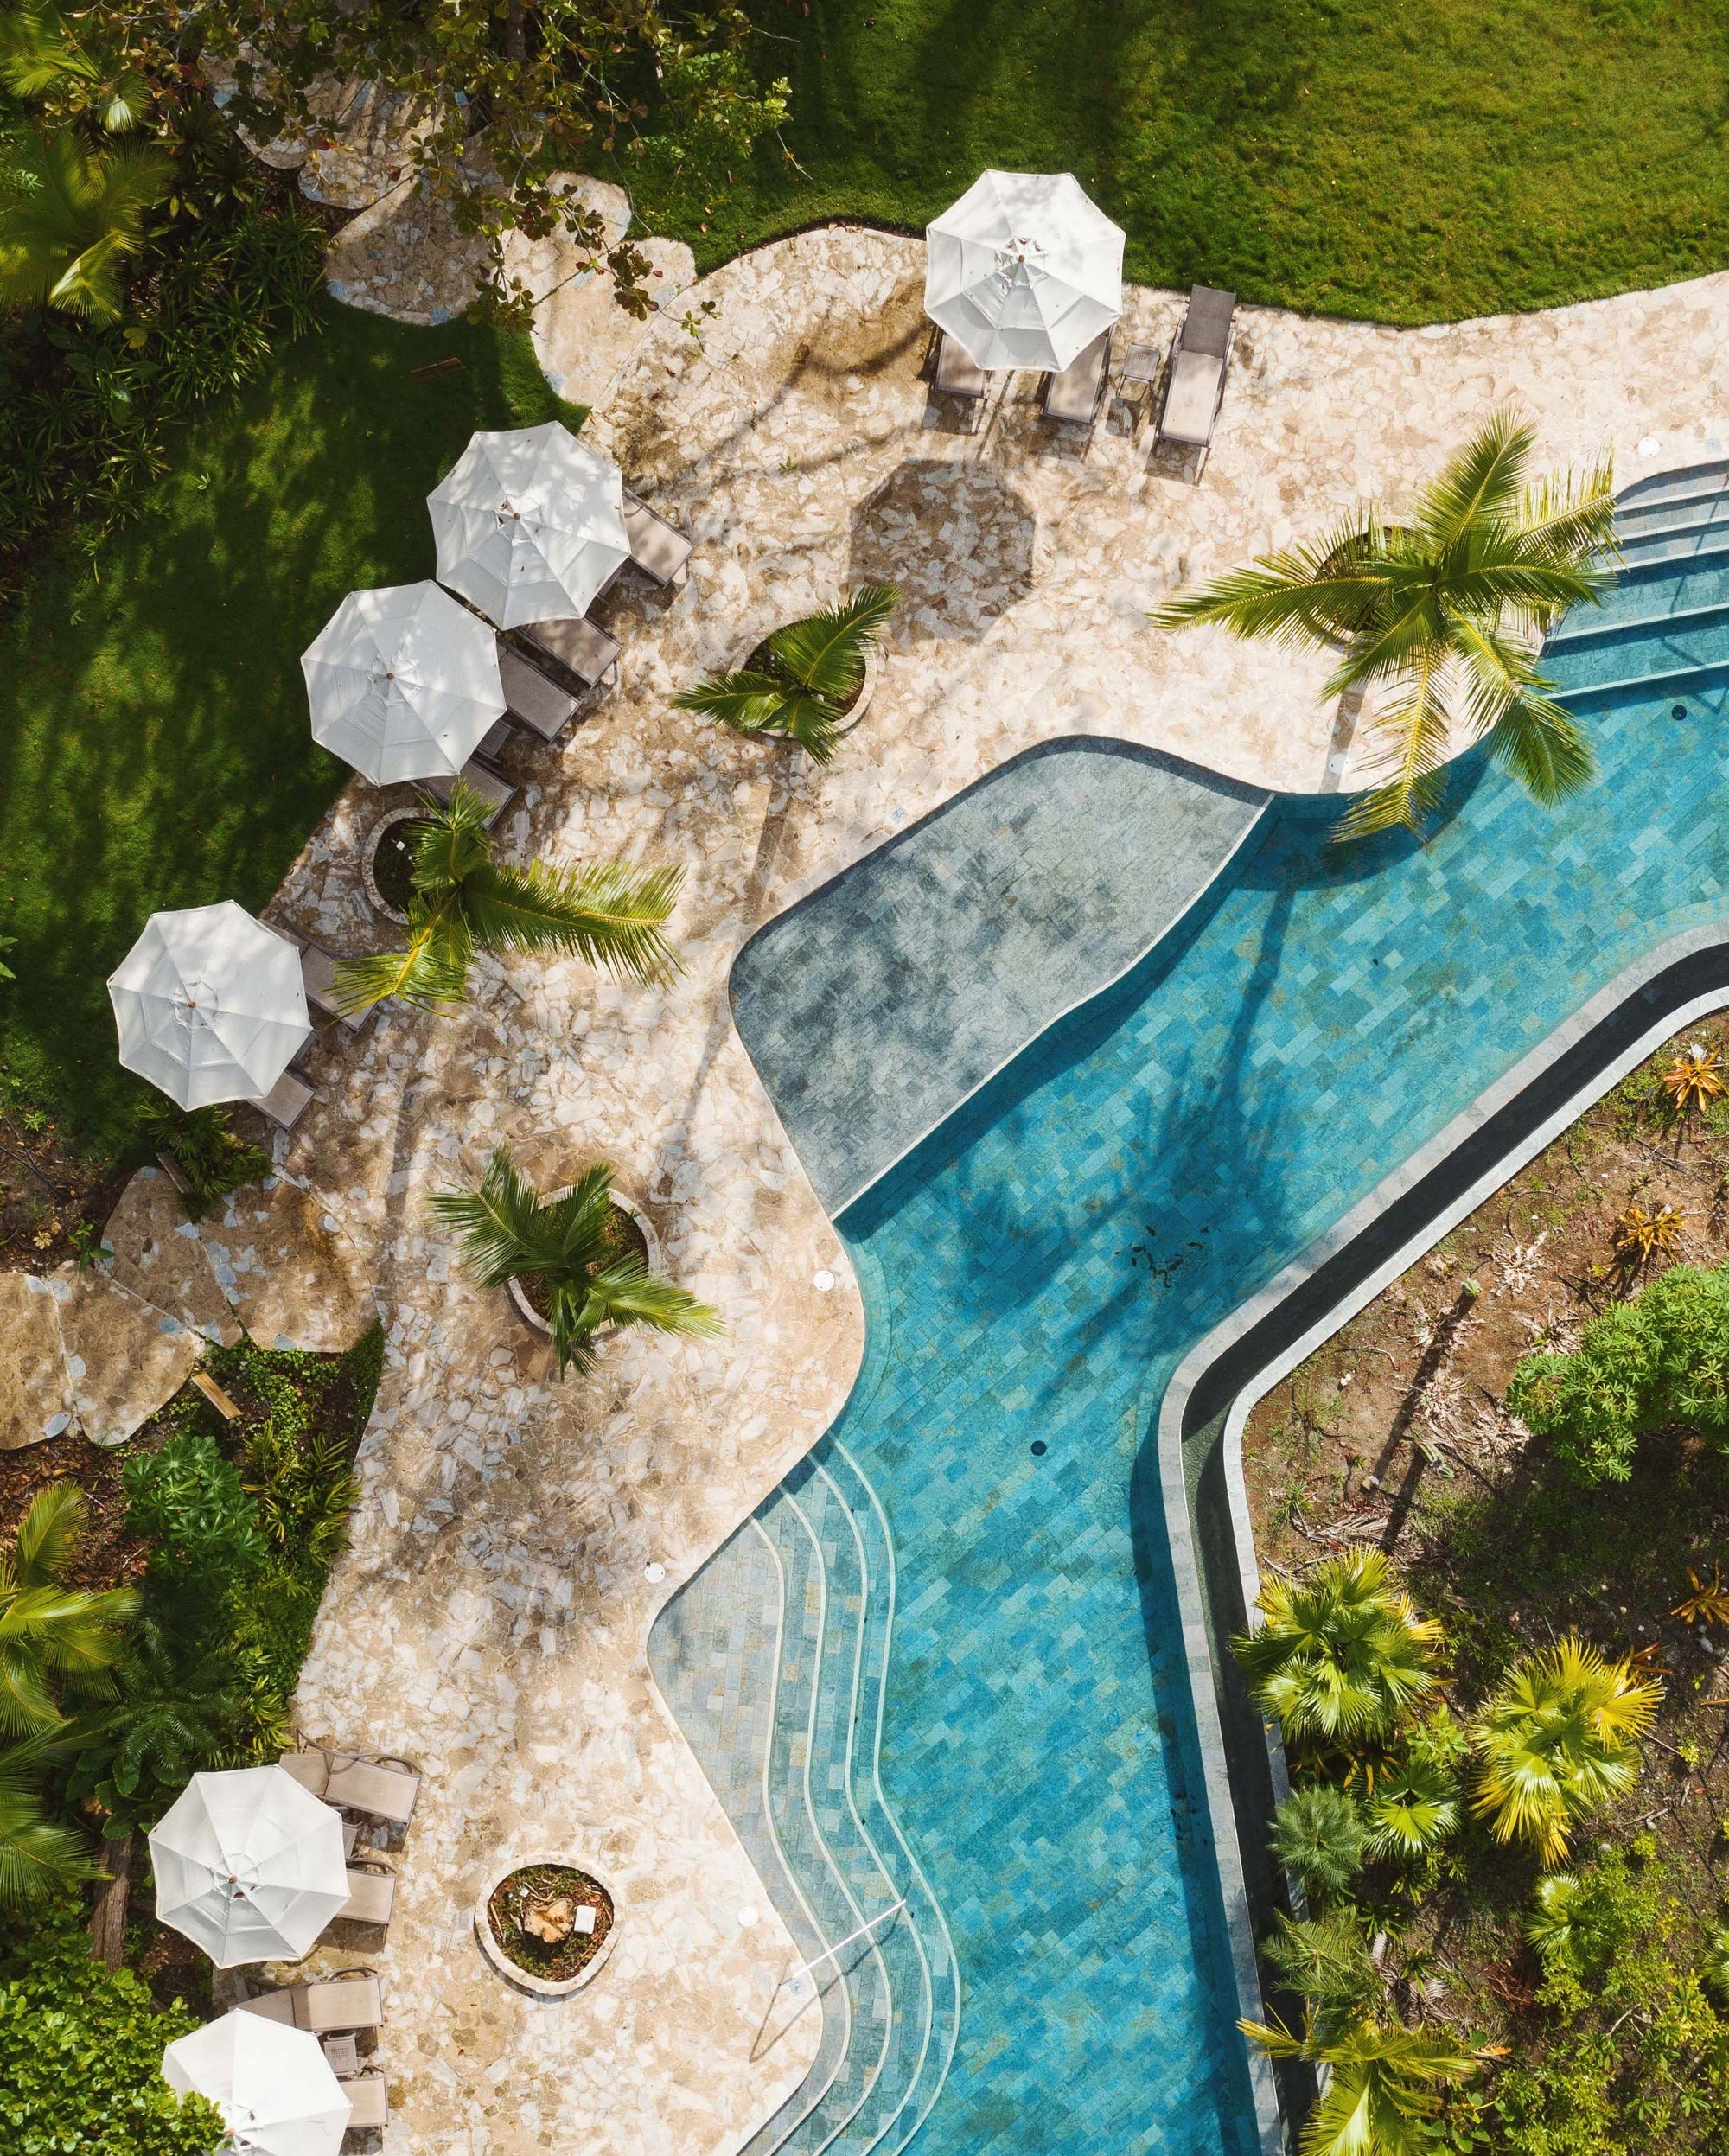 Nantipa, Santa Teresa, Costa Rica - birds eye view of a geometric pool with sun umbrellas, palm trees, and greenery